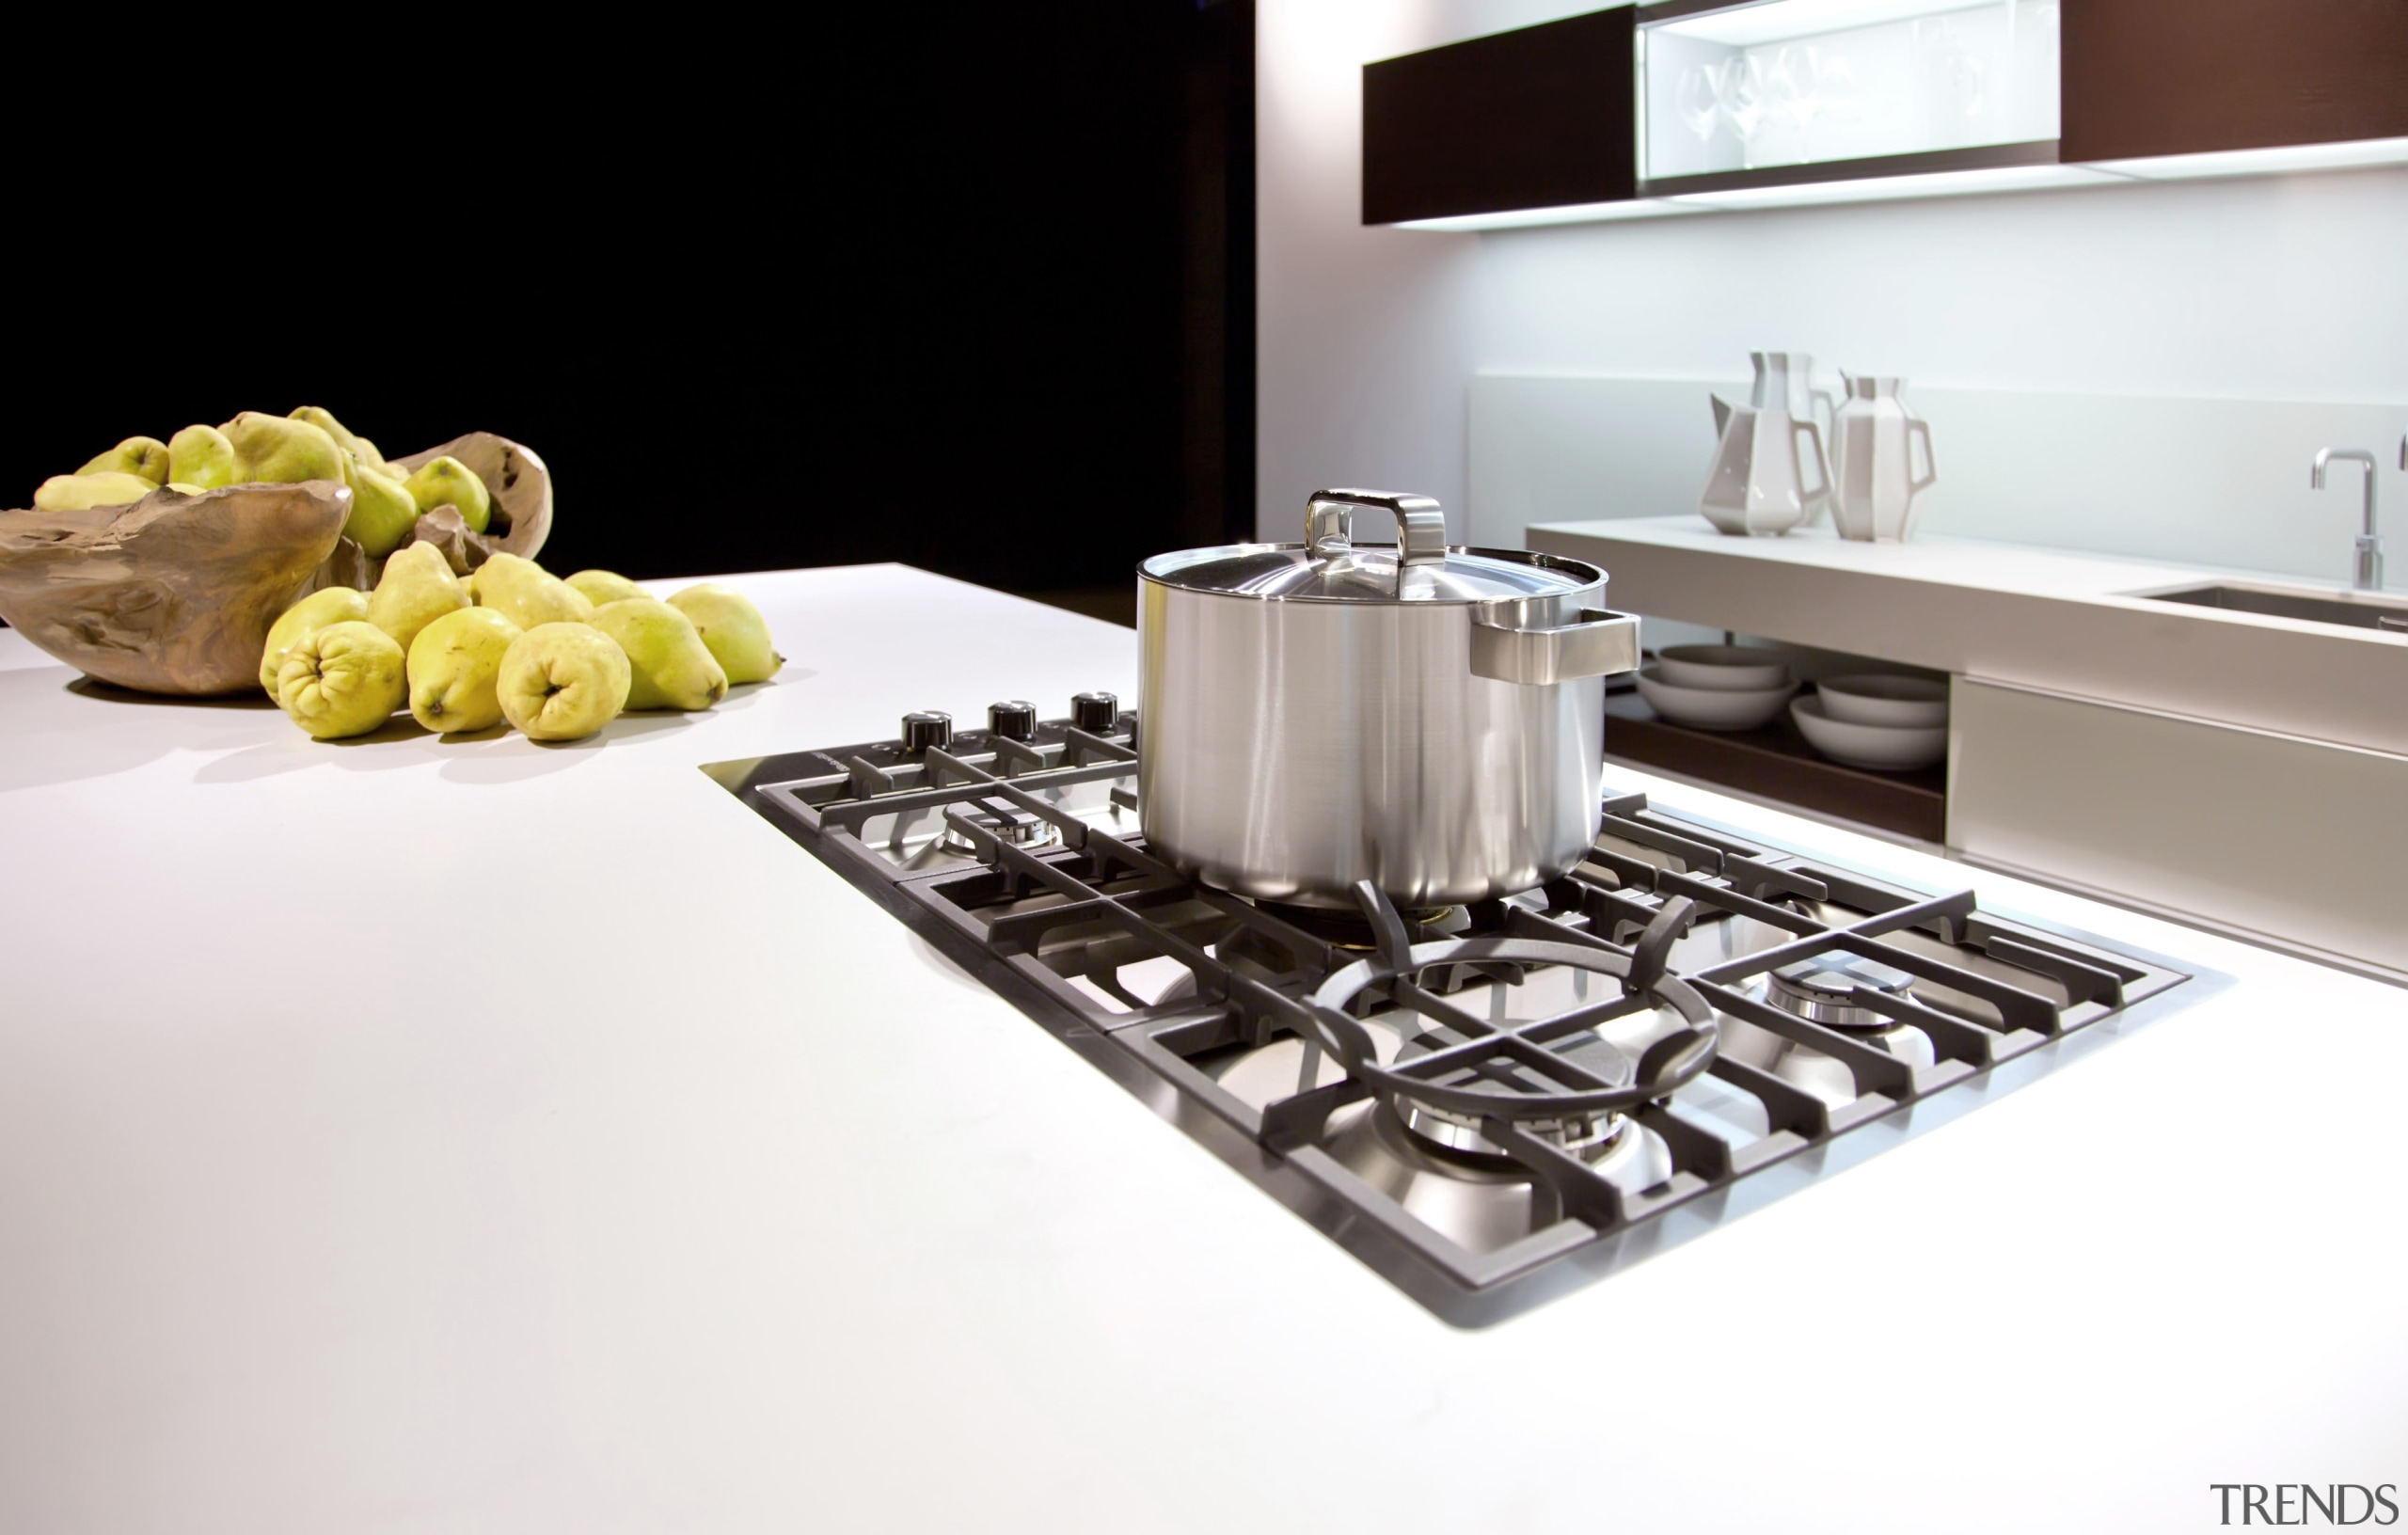 High-end Midea appliances like this chunky gas cooktop countertop, kitchen, product, product design, table, white